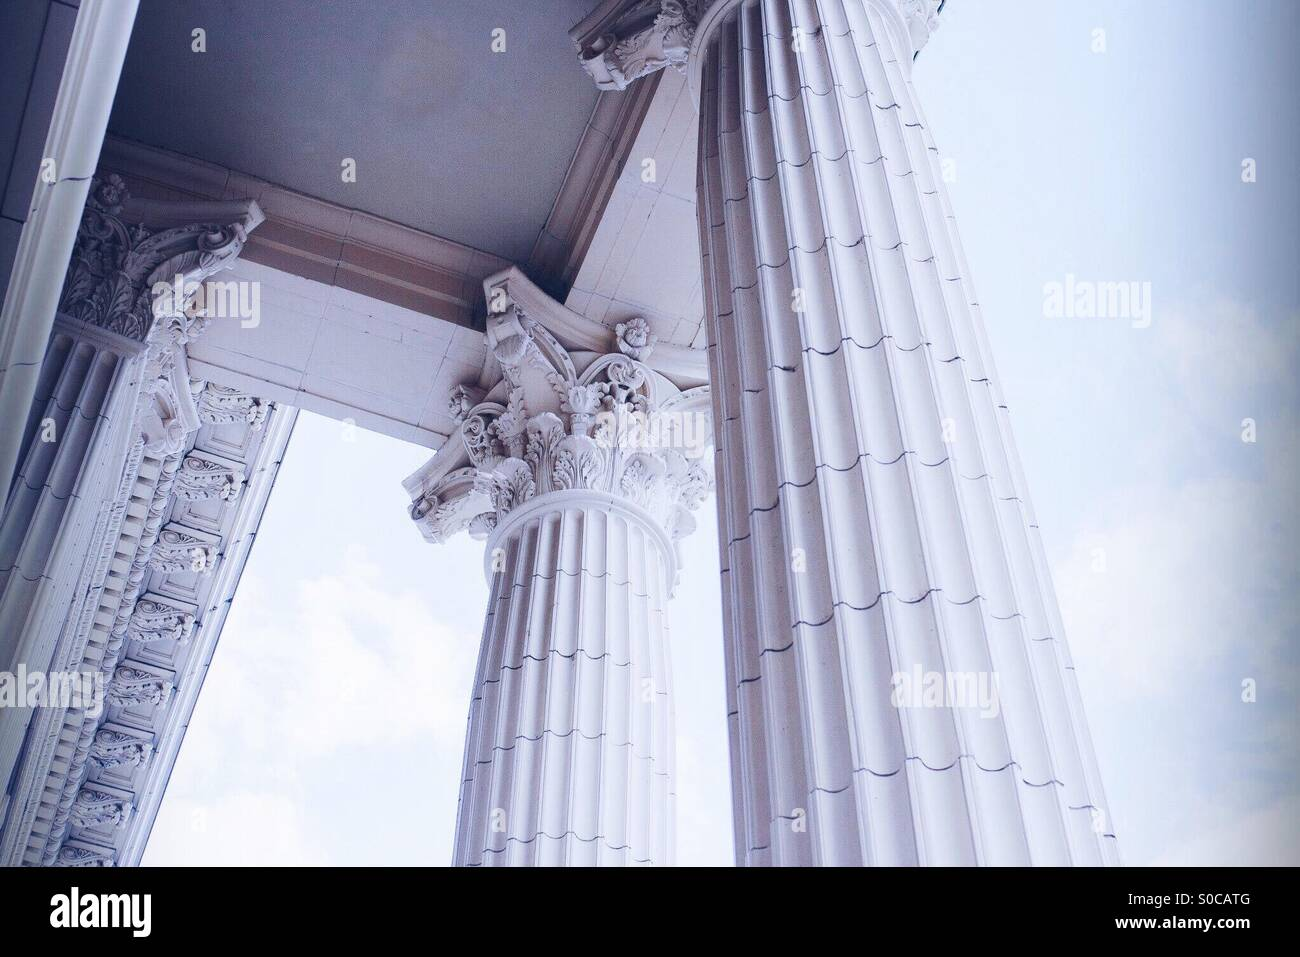 Pillars - Stock Image